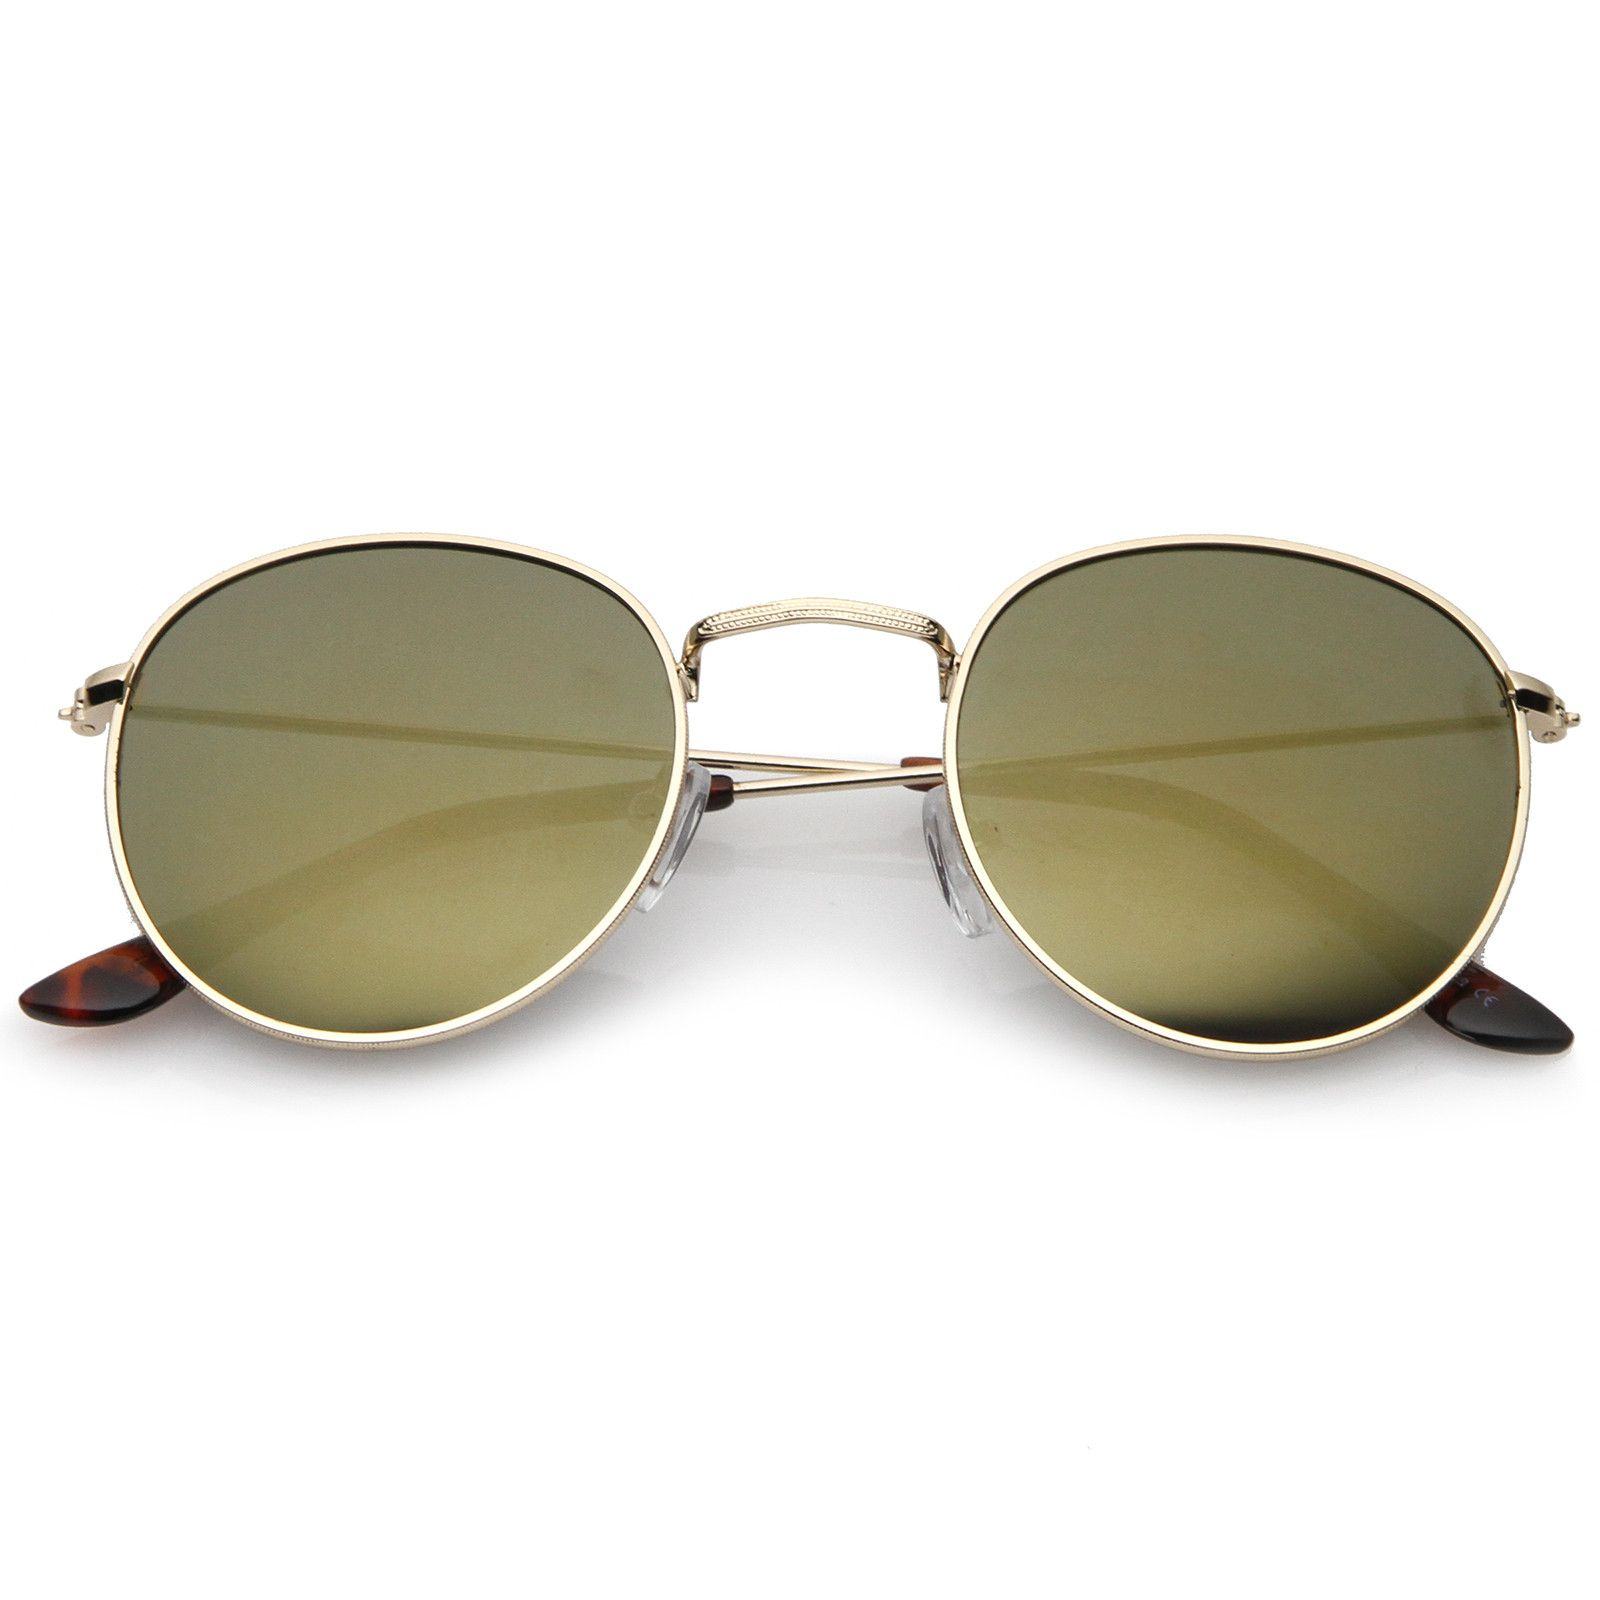 Retro Metal Frame Thin Temples Colored Mirror Lens Round Sunglasses